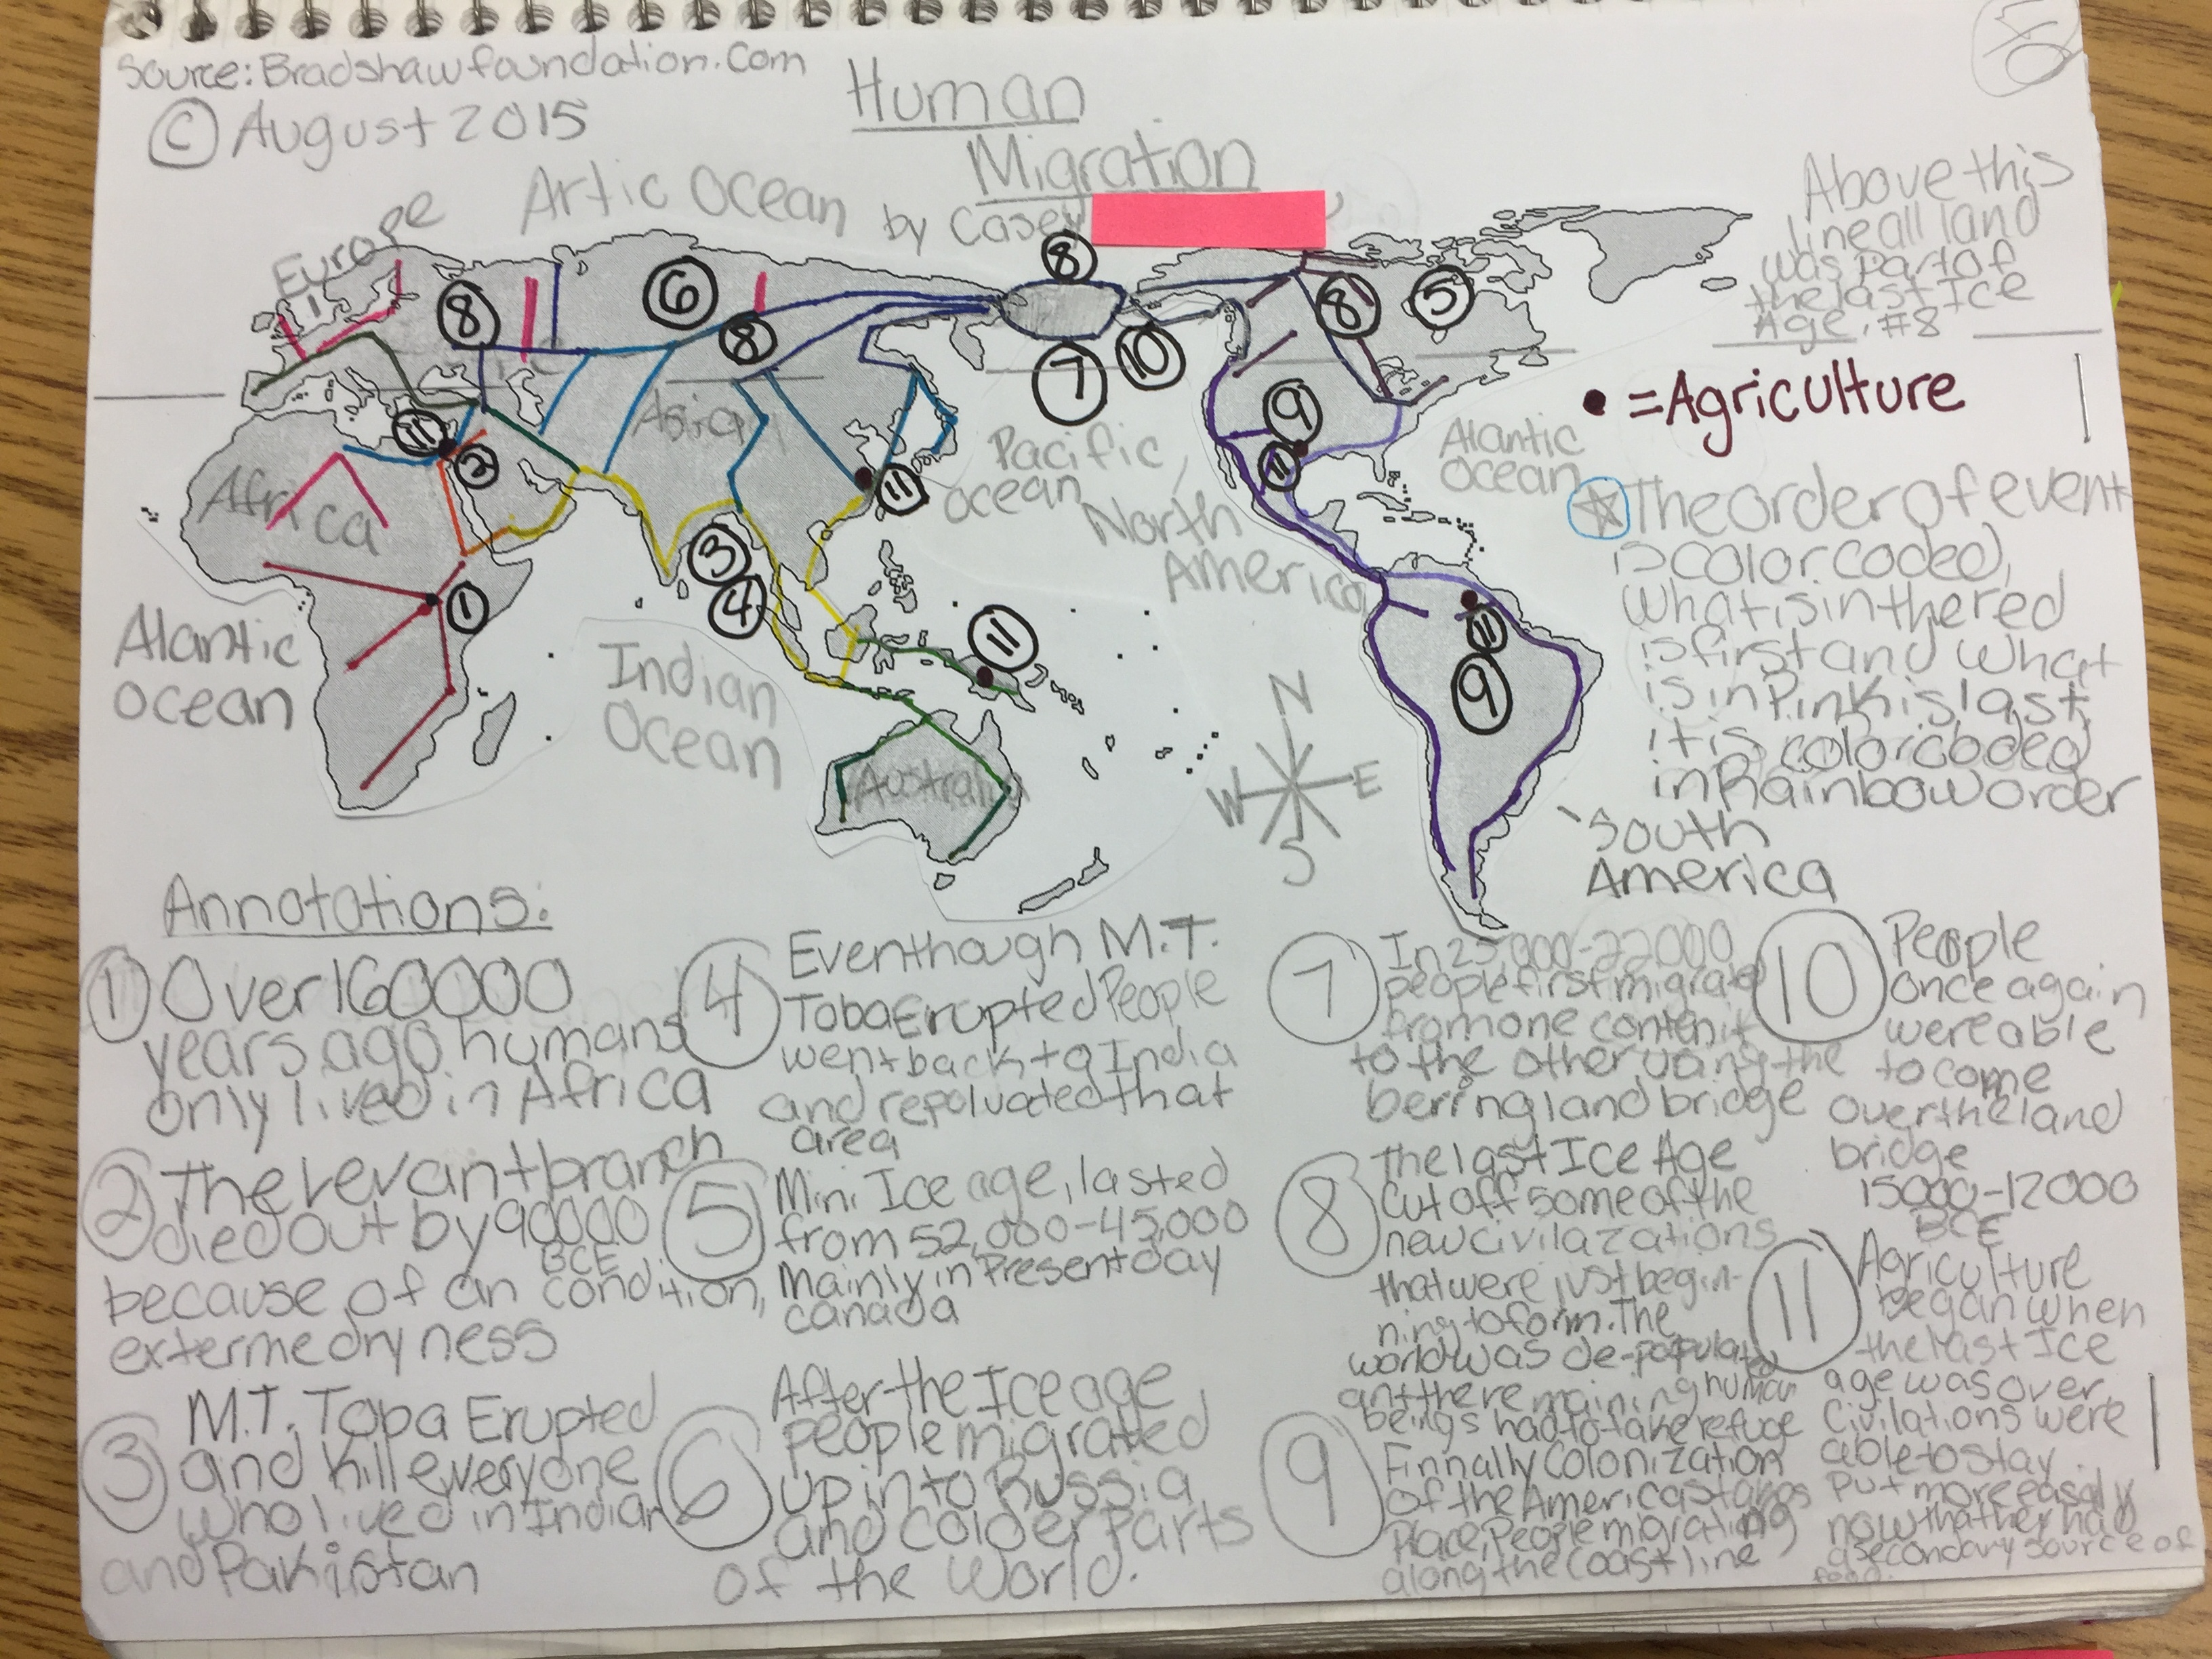 Social studies ancient americas intro ppt first americans article timeline notes practice cliffdwellers moundbuilders notes venn diagram layered rubric ccuart Image collections